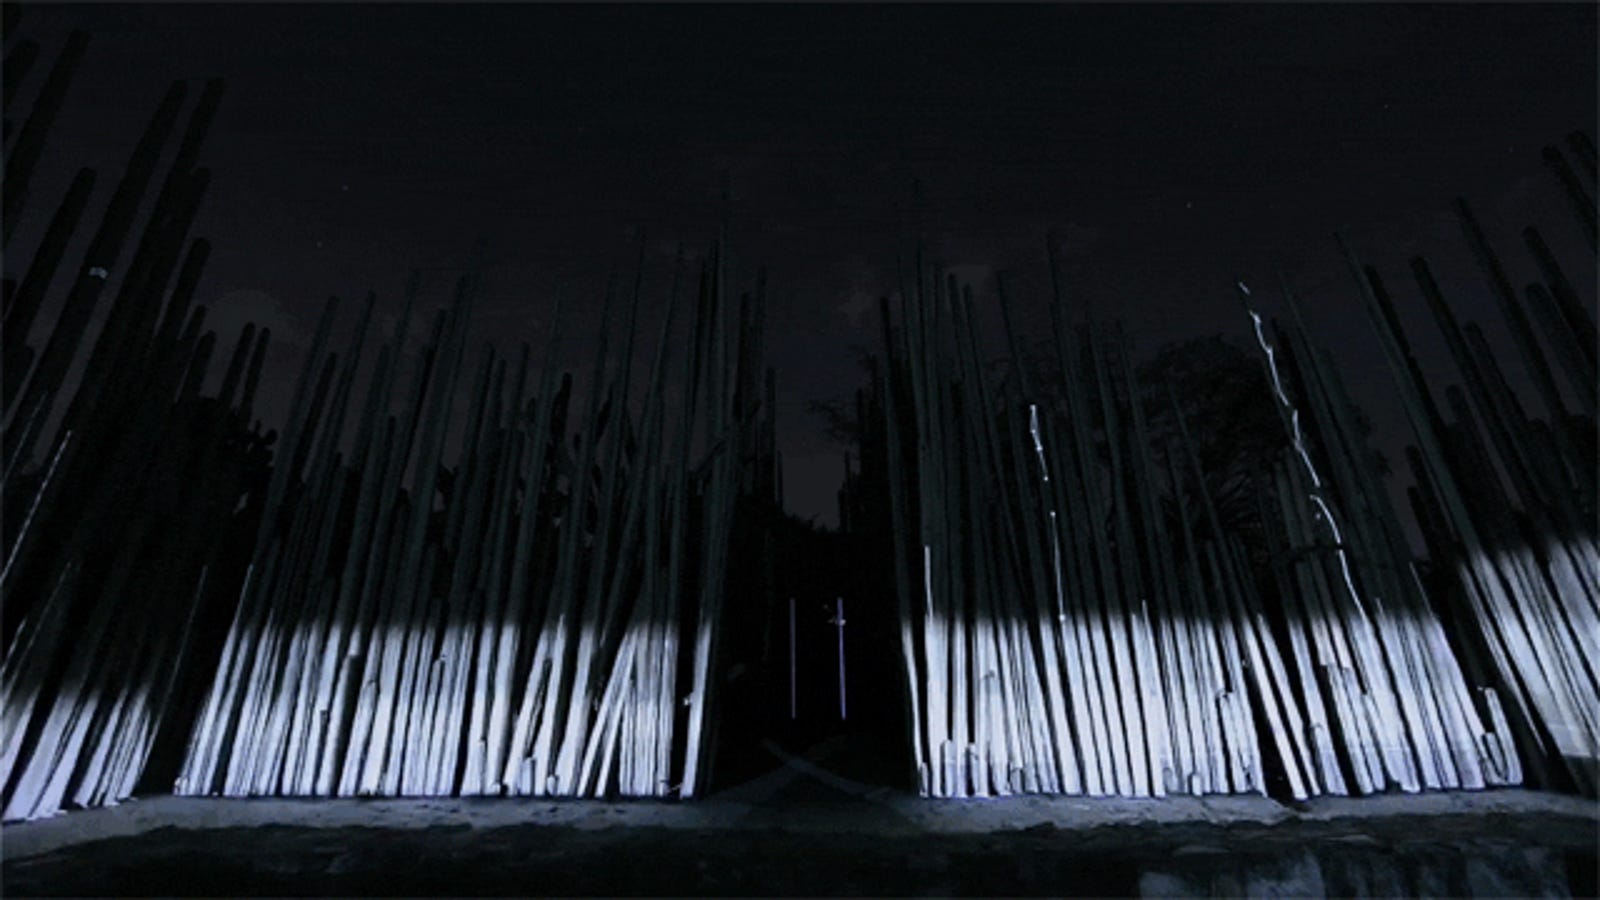 Watch an enchanted forest come to life in a dancing light show